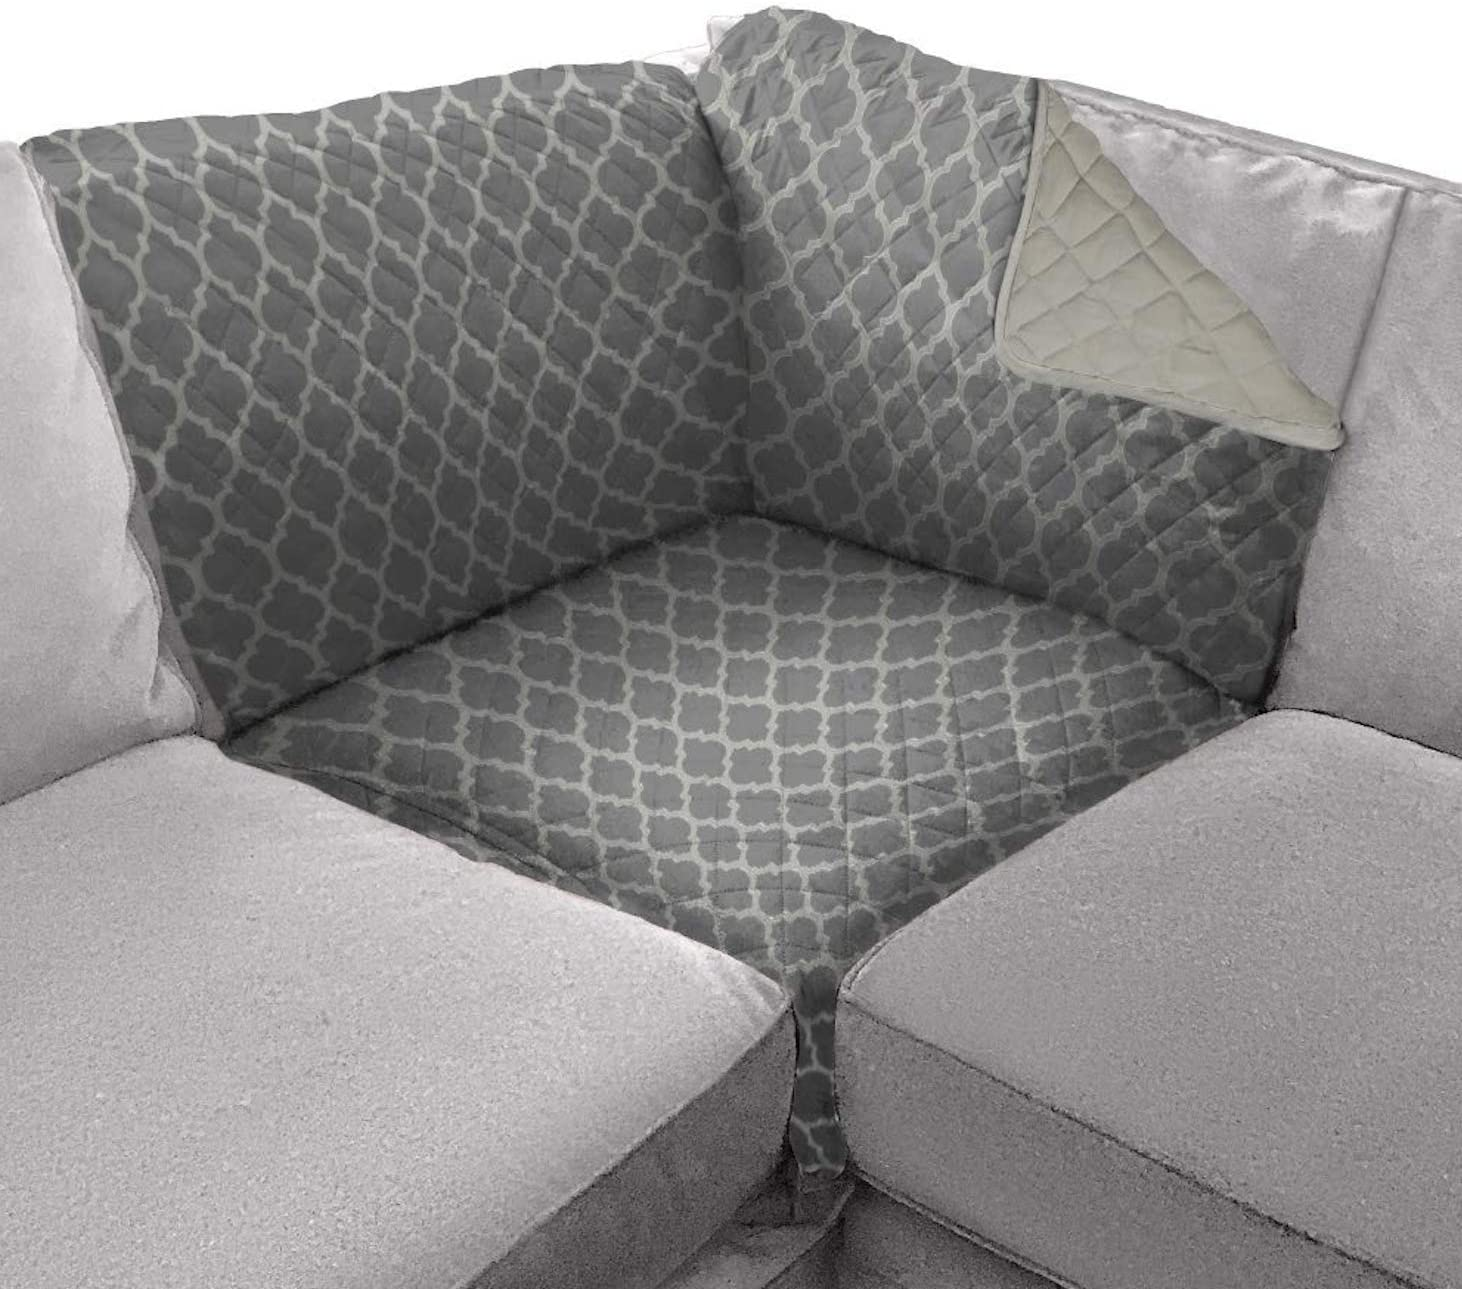 Sofa Shield Original Patent Pending Sofa Corner Sectional Slipcover, Many Colors, 30x30 Inch, Reversible Washable Furniture Protector with Straps, Sectional Slip Cover, Quatrefoil Charcoal Linen